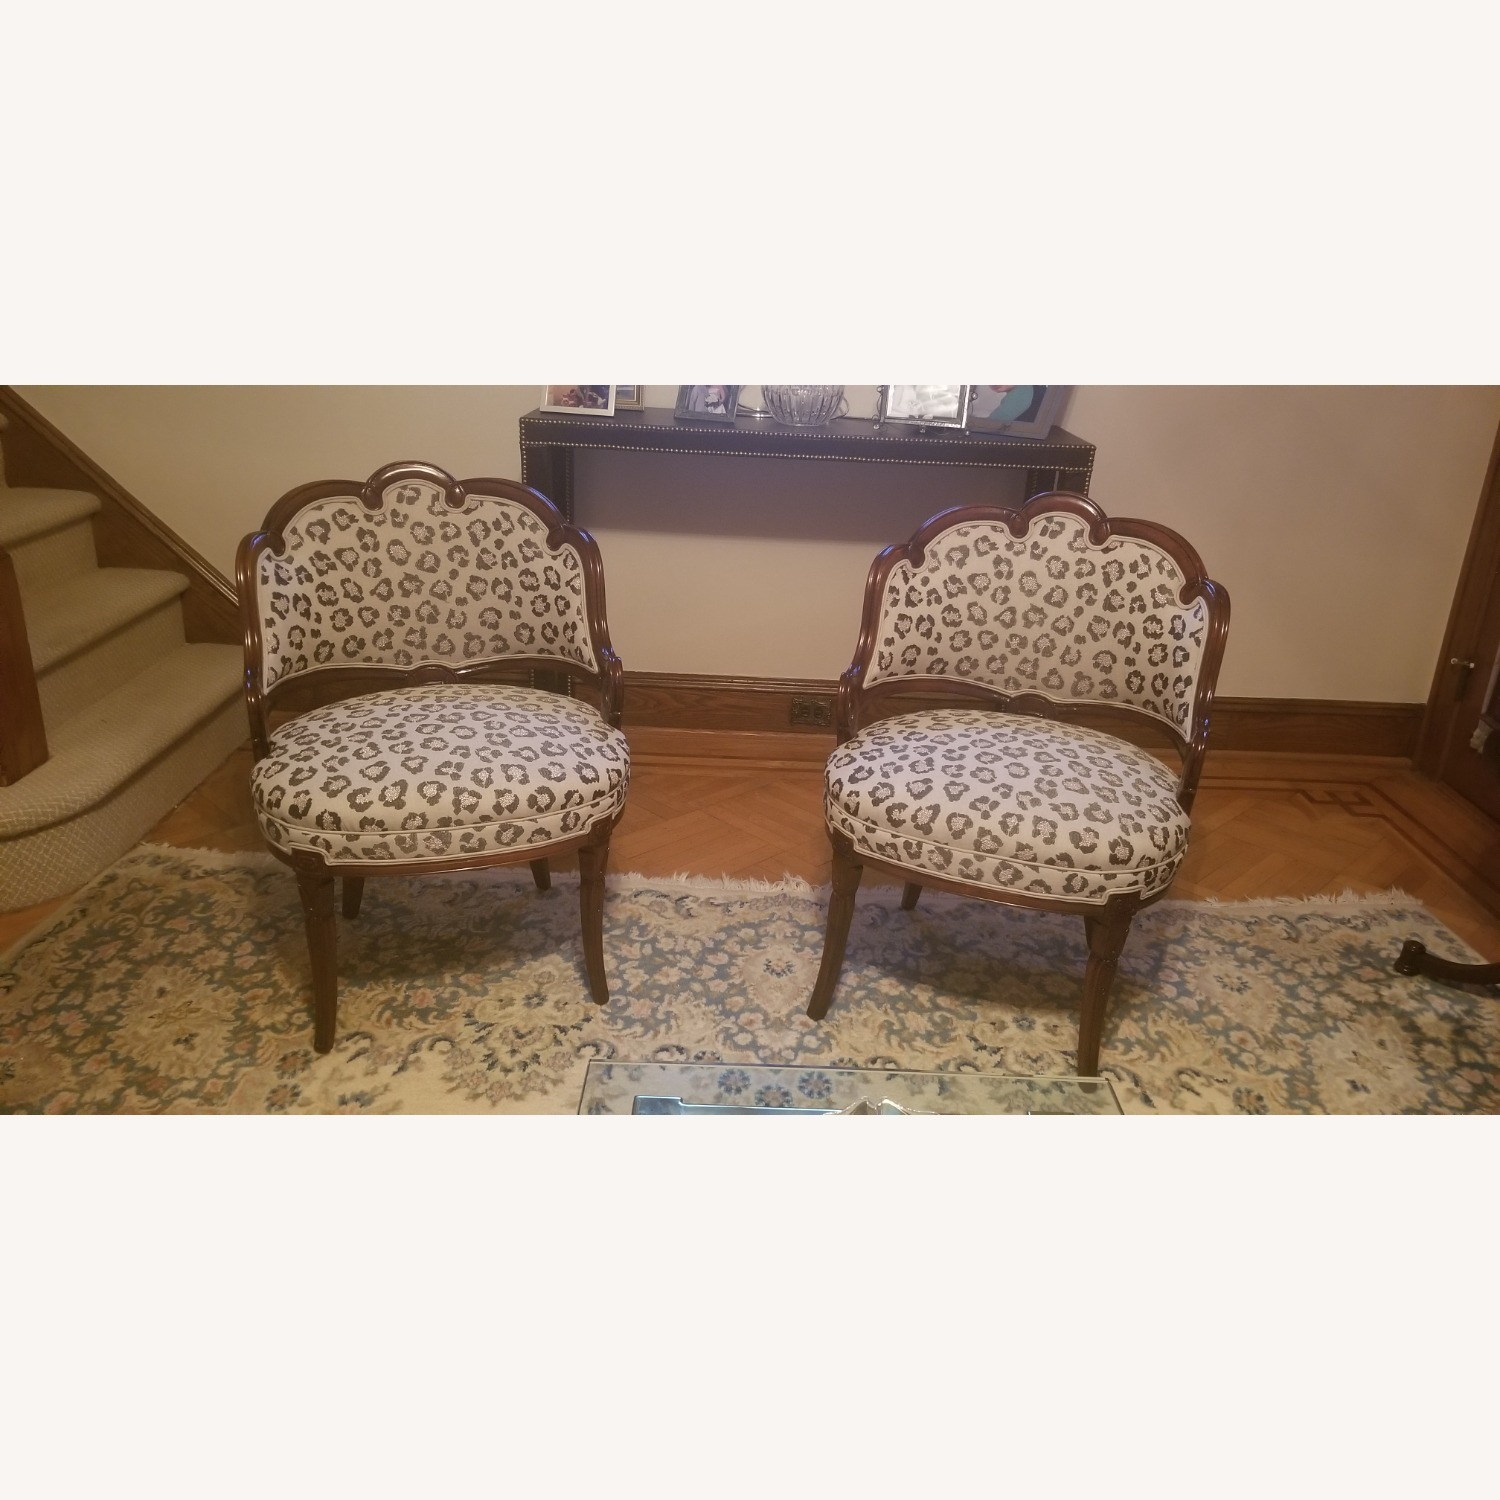 Side Accent Chairs - Antique/Vintage - image-1